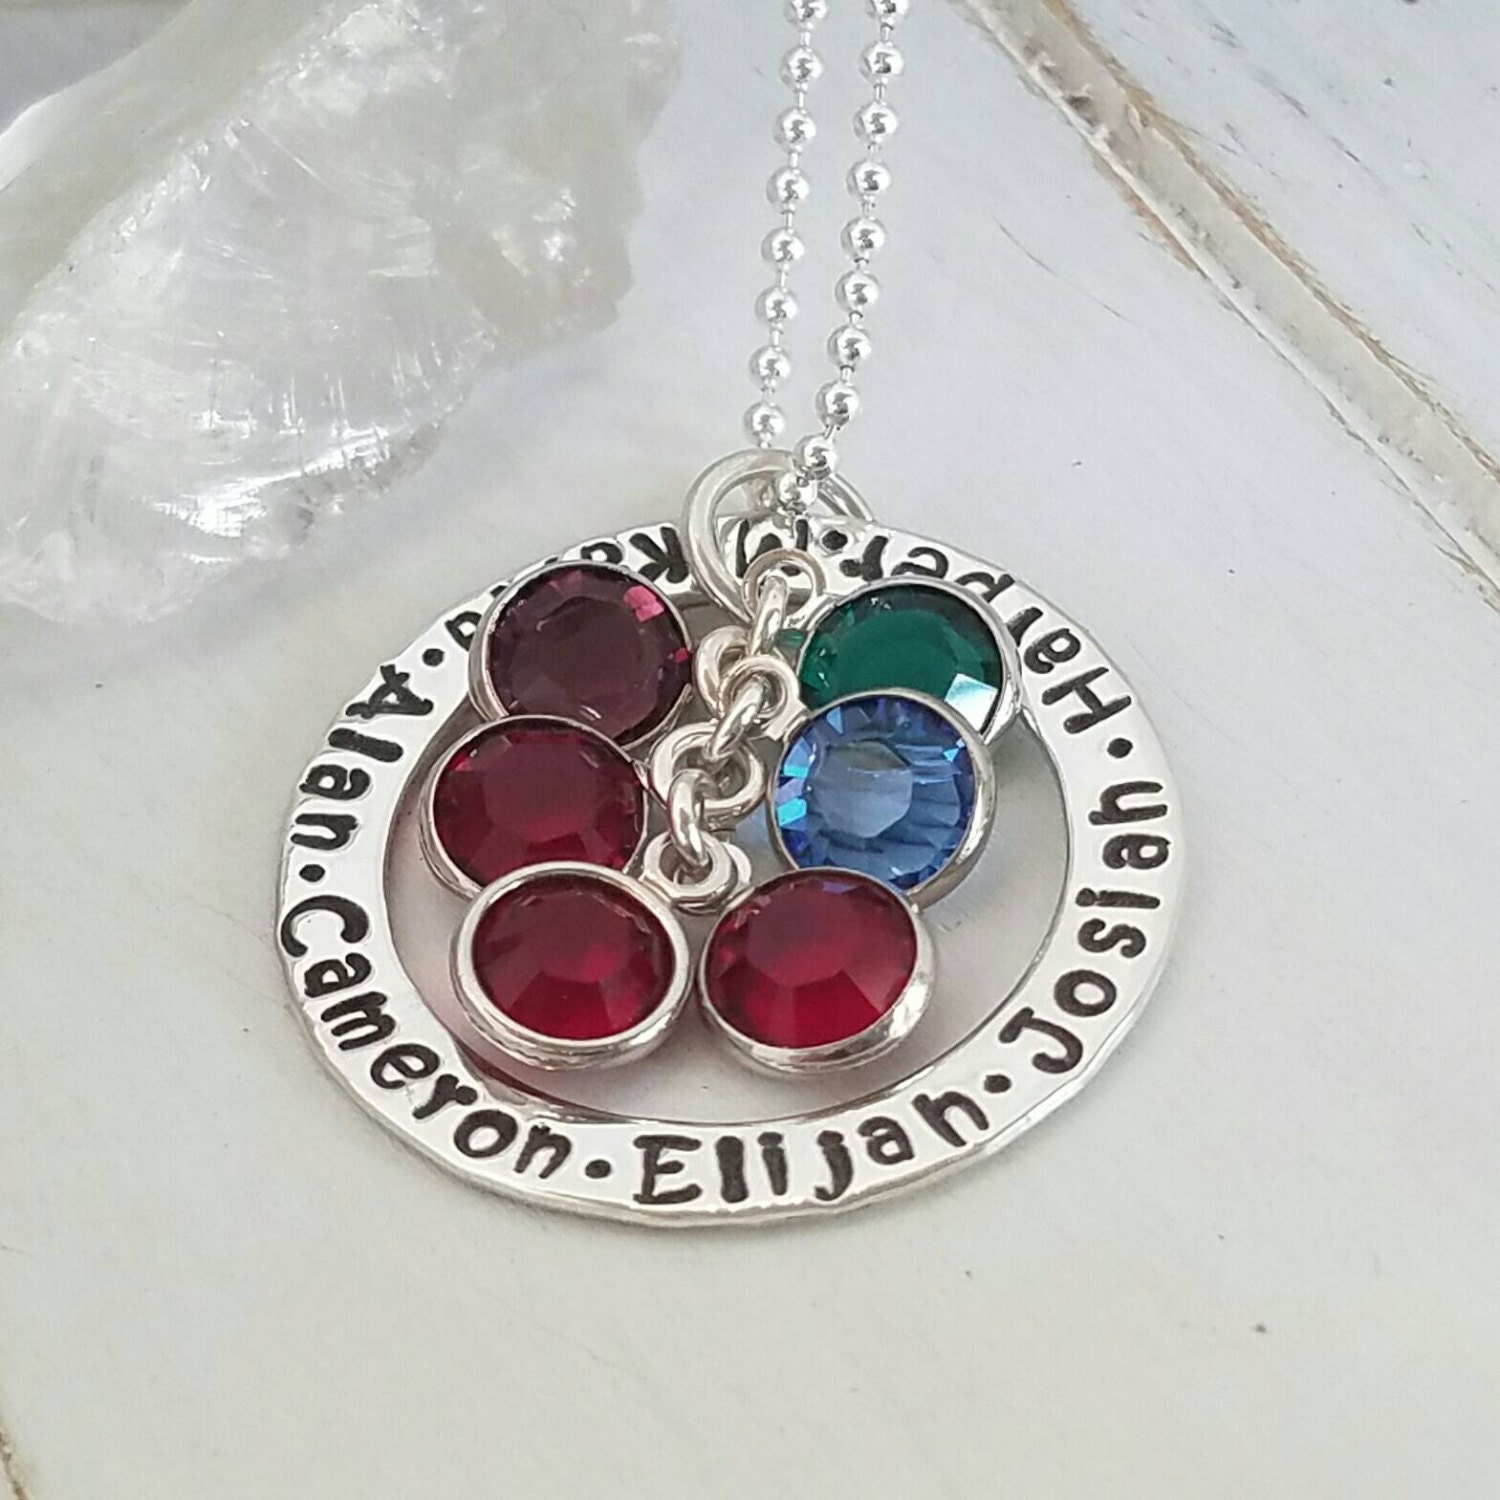 Personalized grandmother necklace 6 name by everythinginitials for Grandmother jewelry you can add to